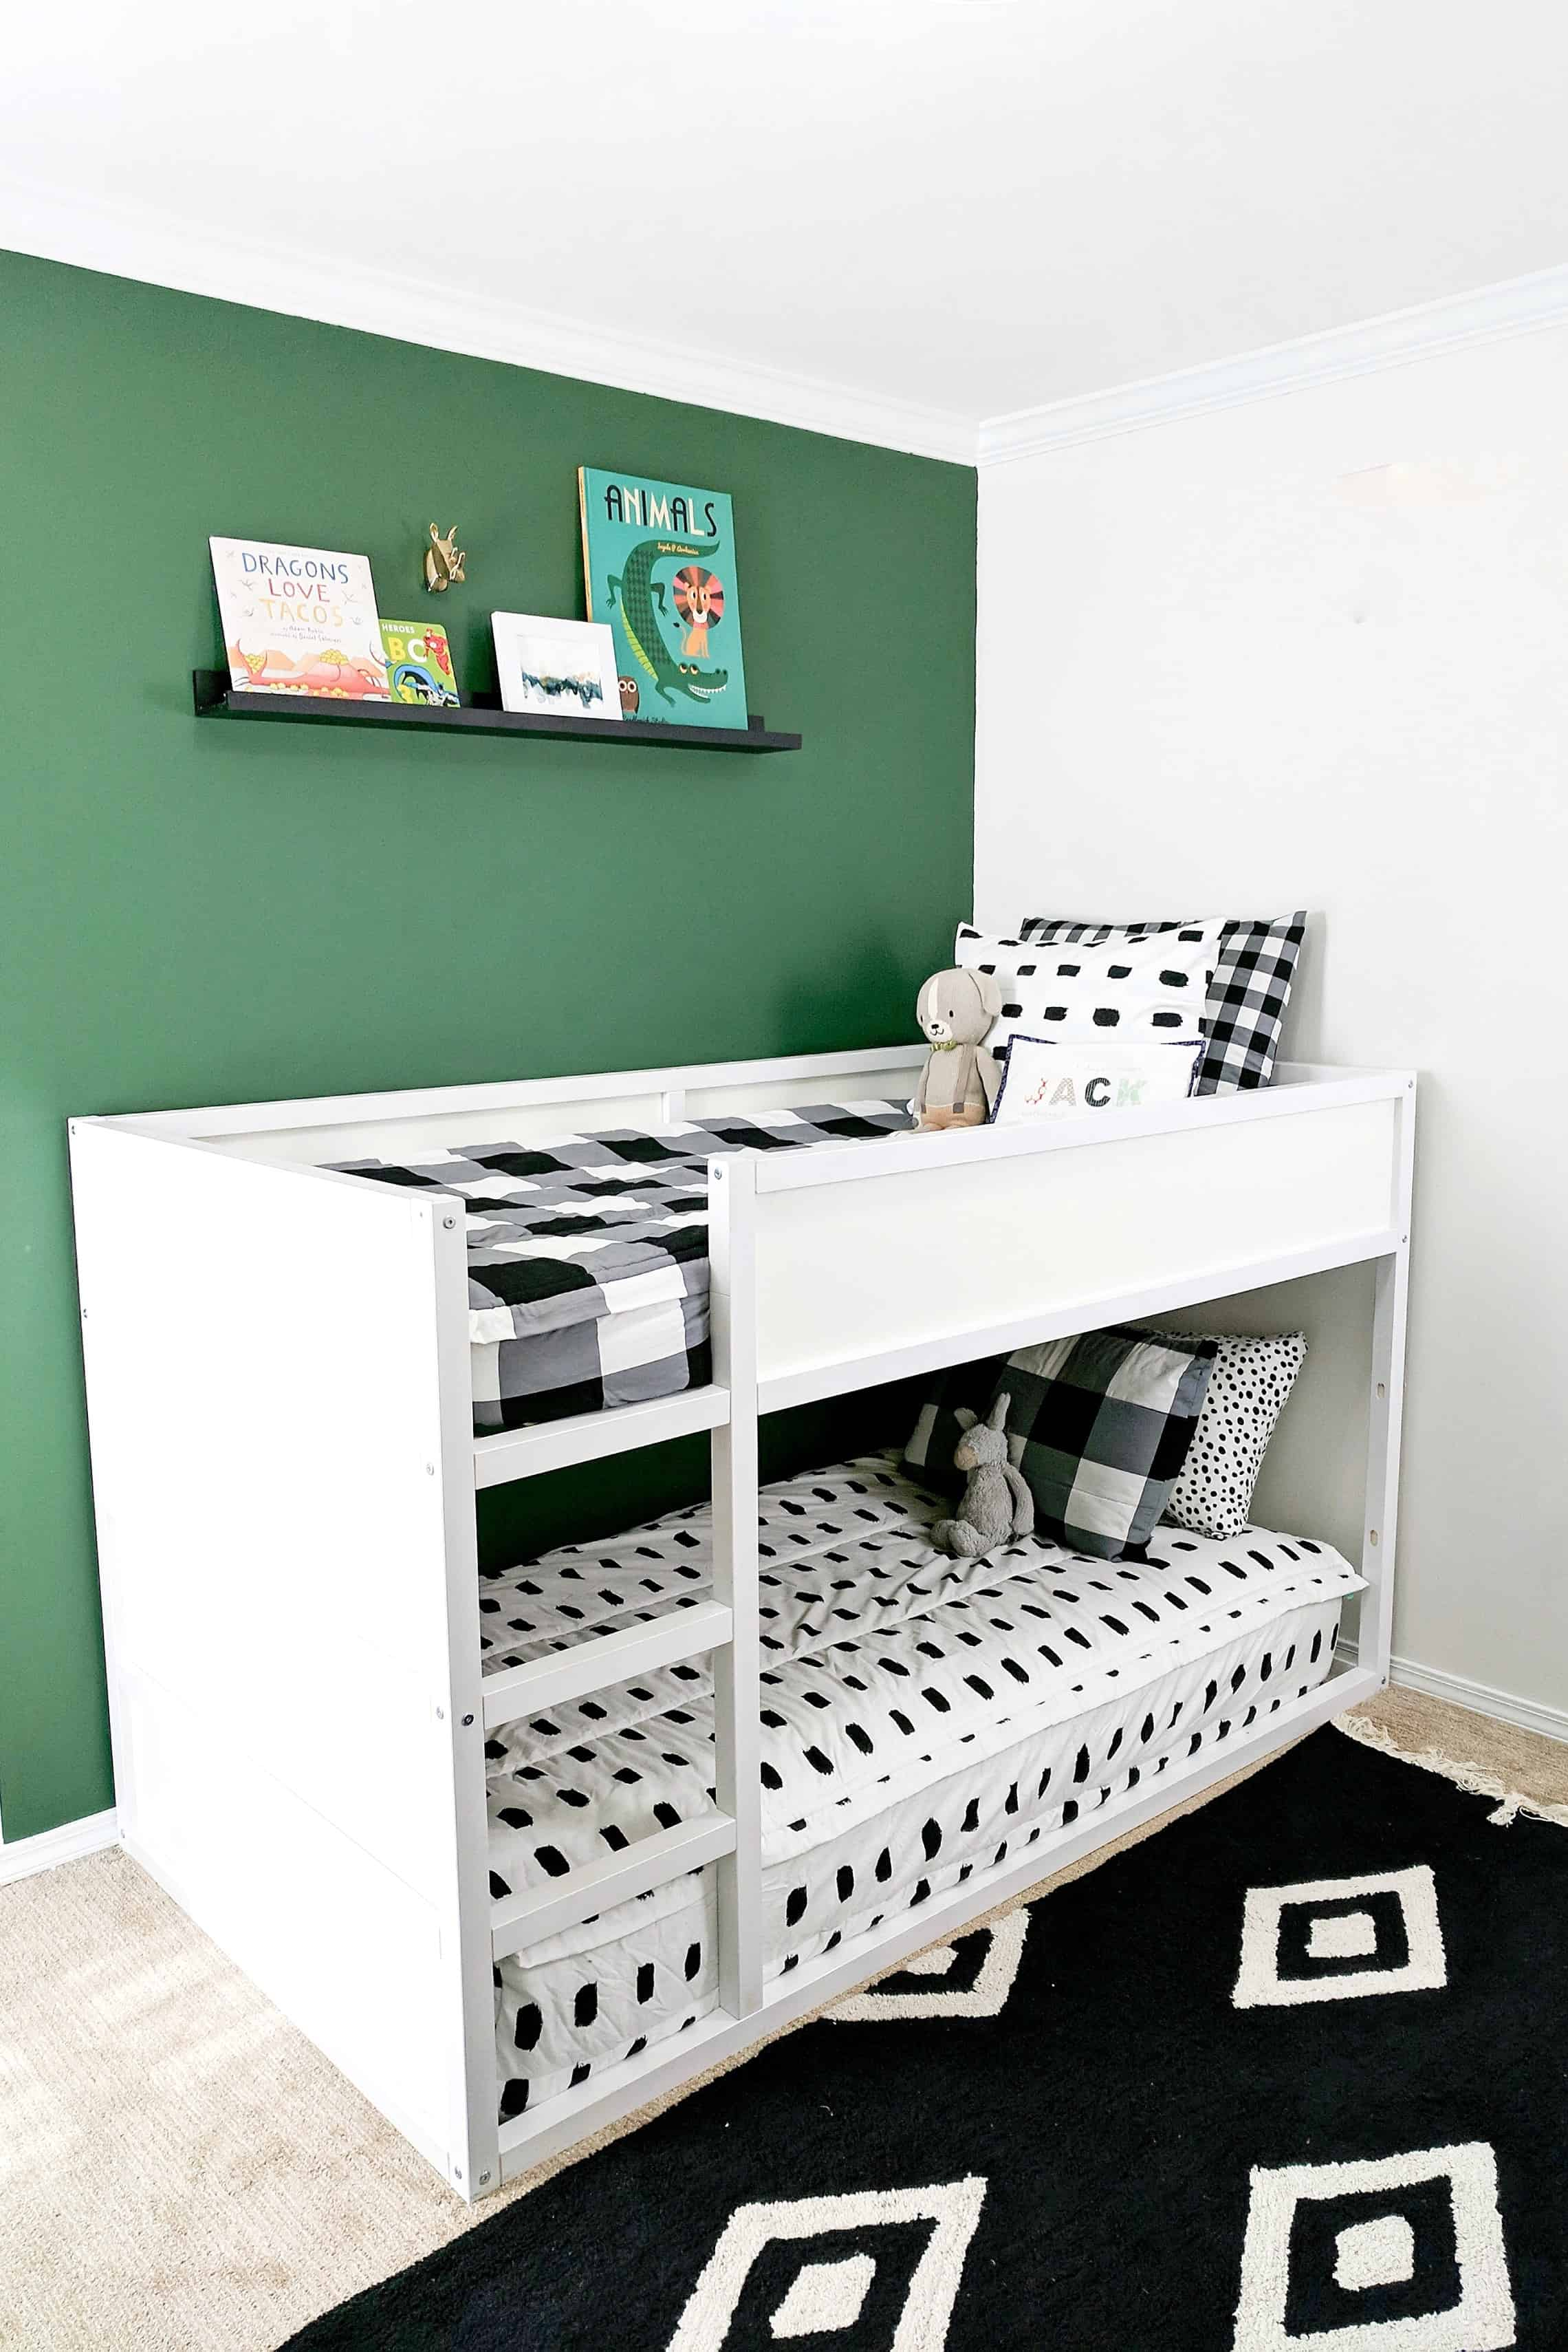 ikea bunk beds against green wall